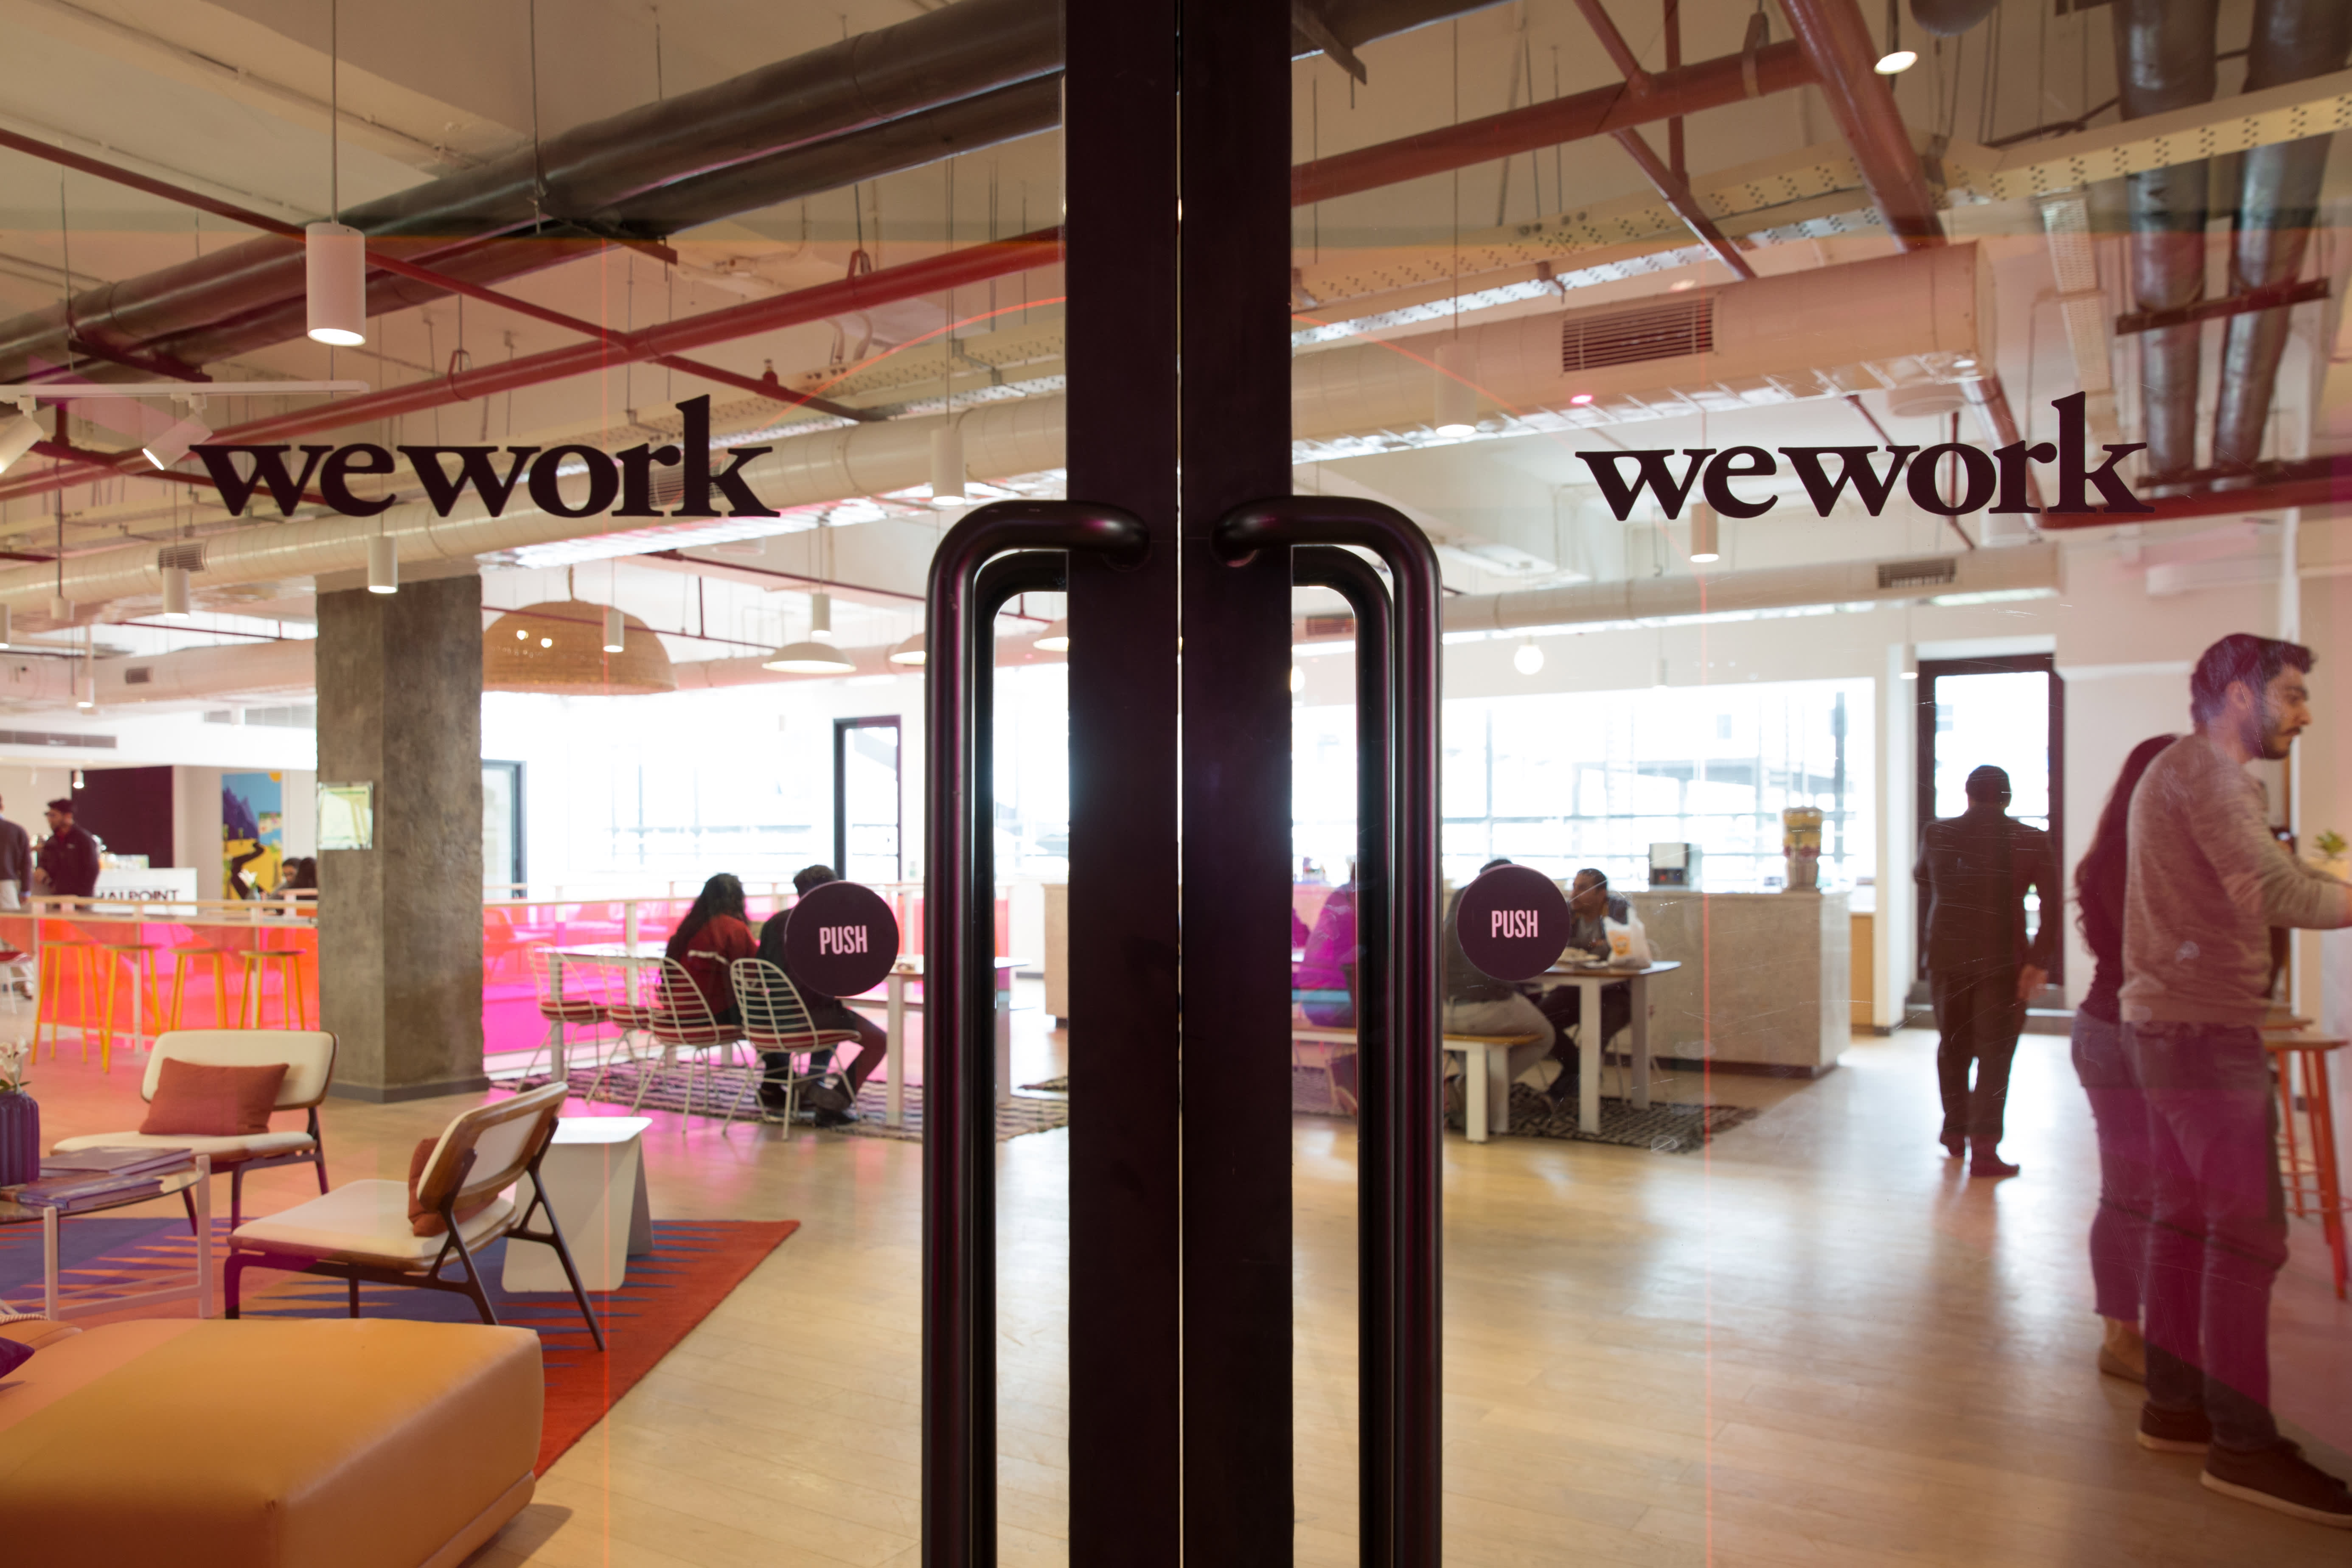 We Company, known as WeWork, files confidentially for IPO